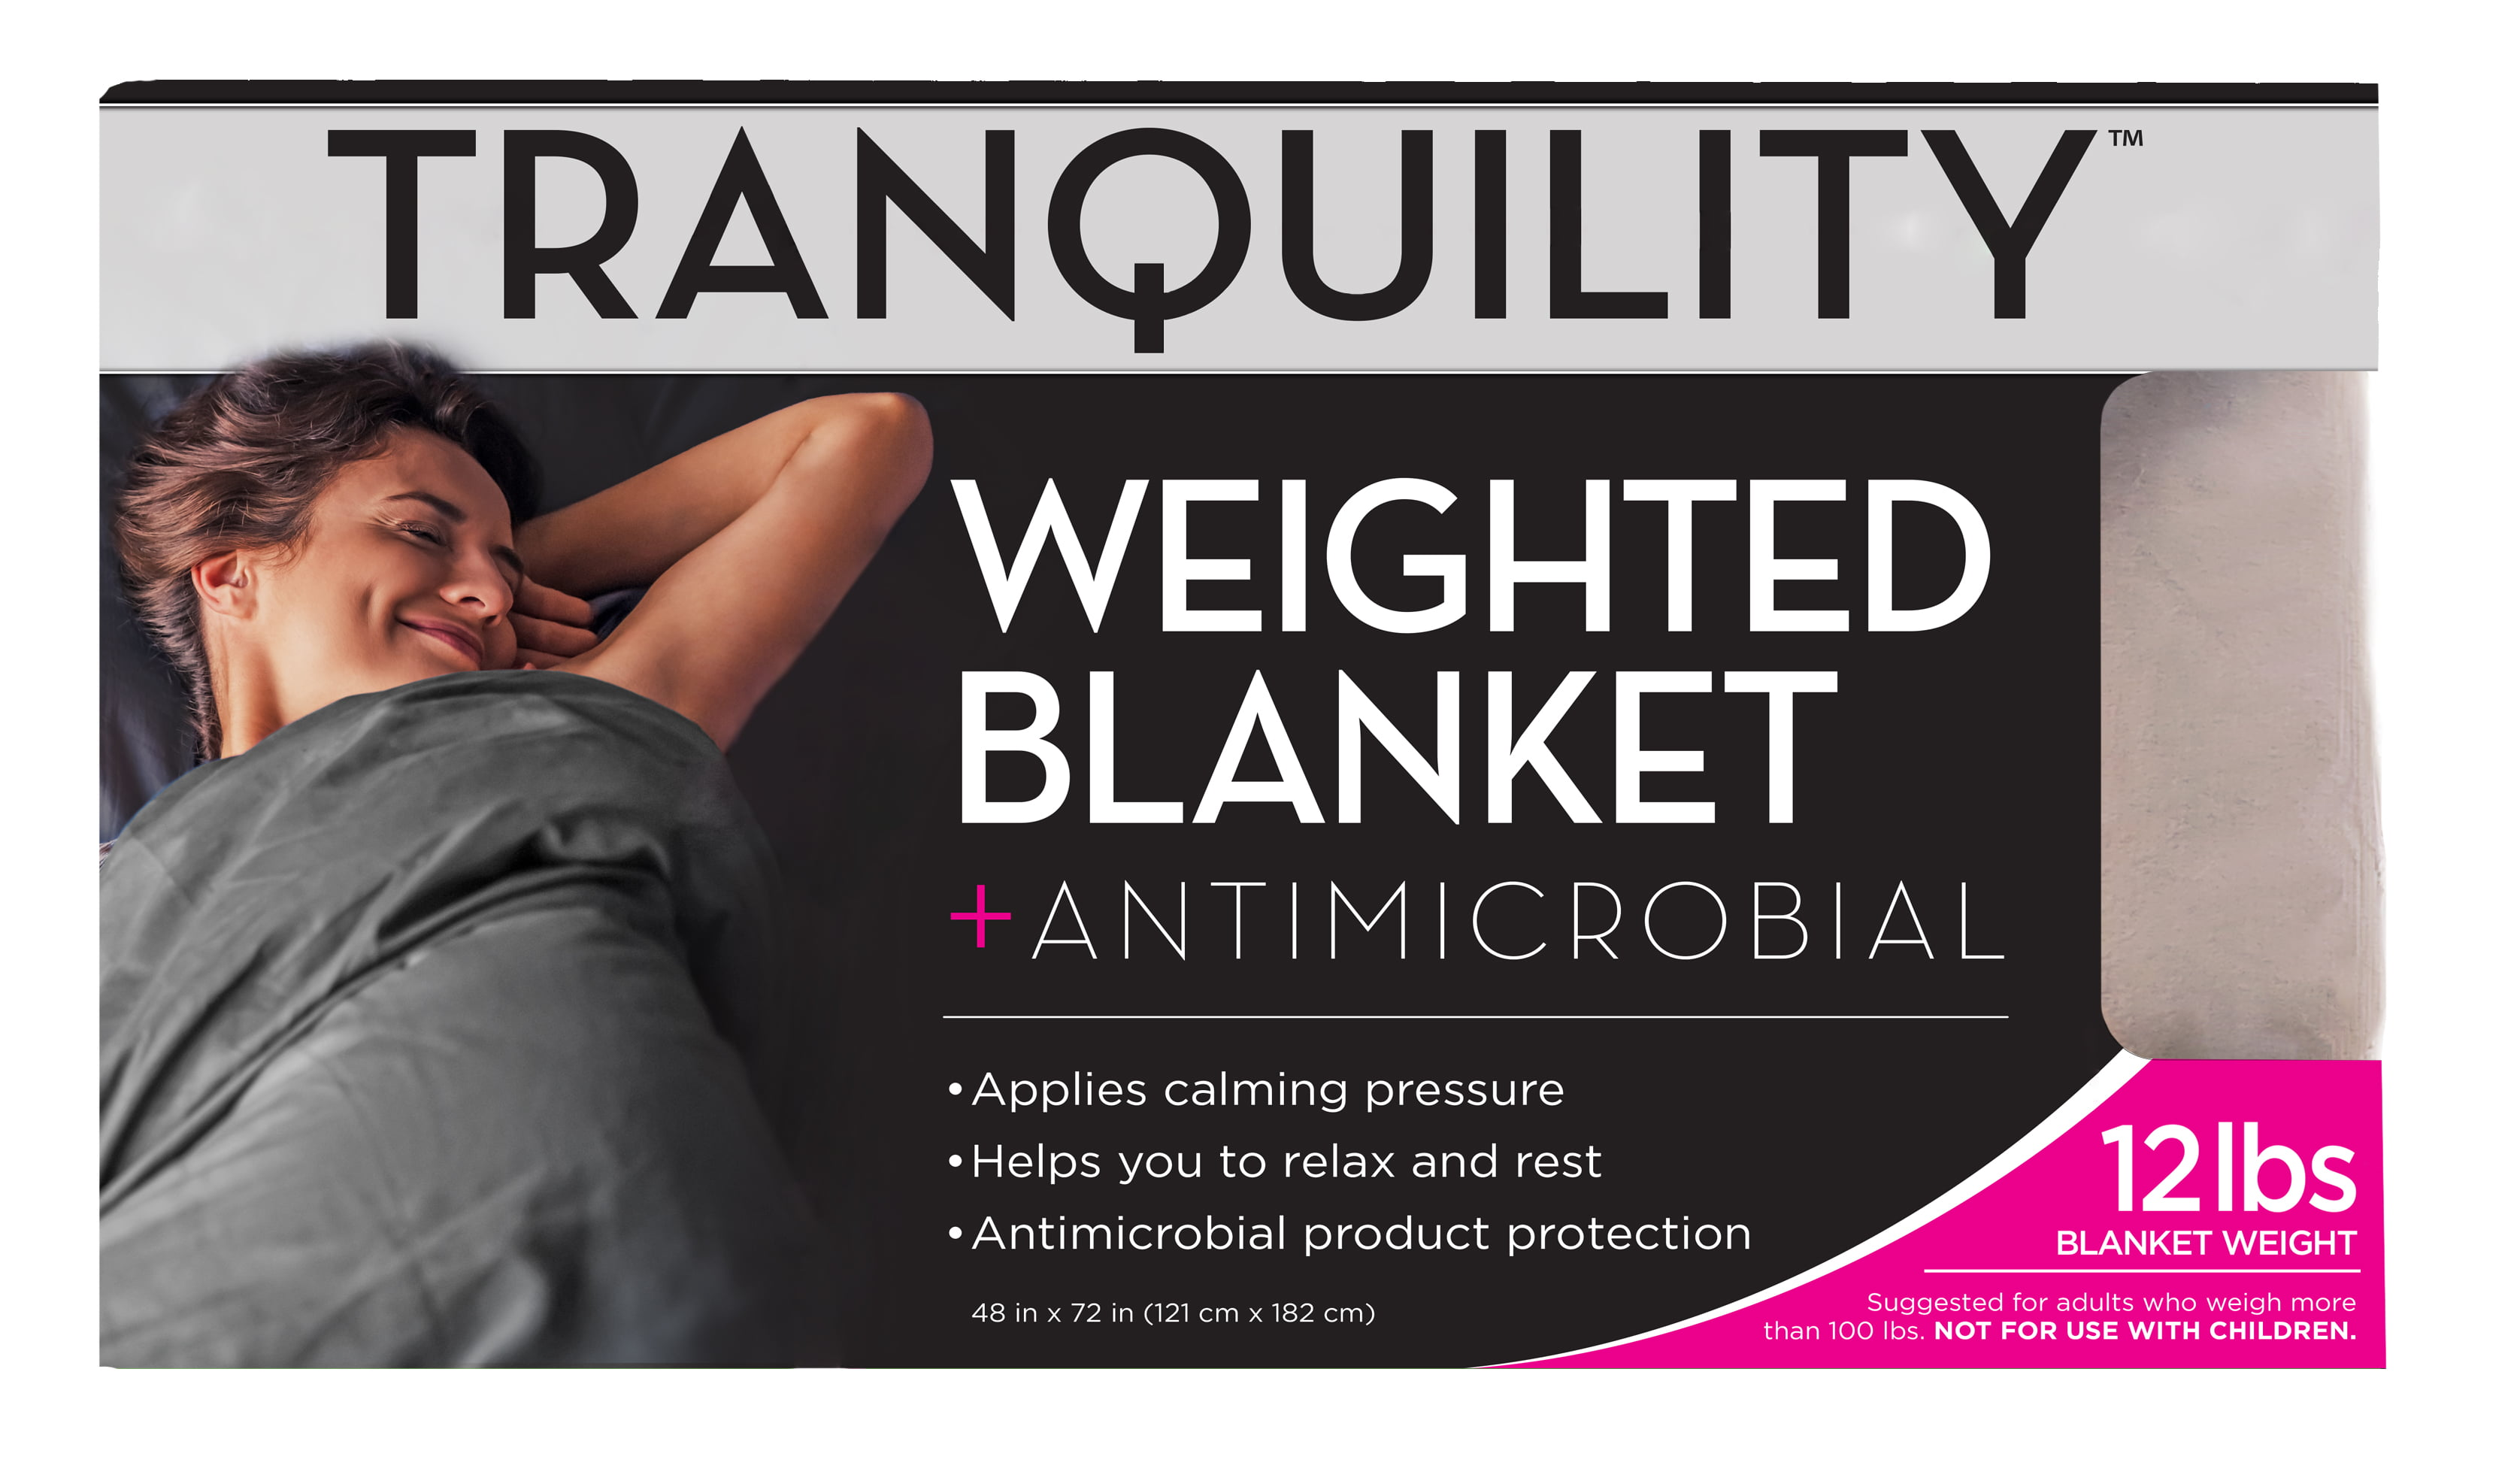 "Tranquility Weighted Blanket 12lb, 48"" x 72"", Tan - Walmart.com"